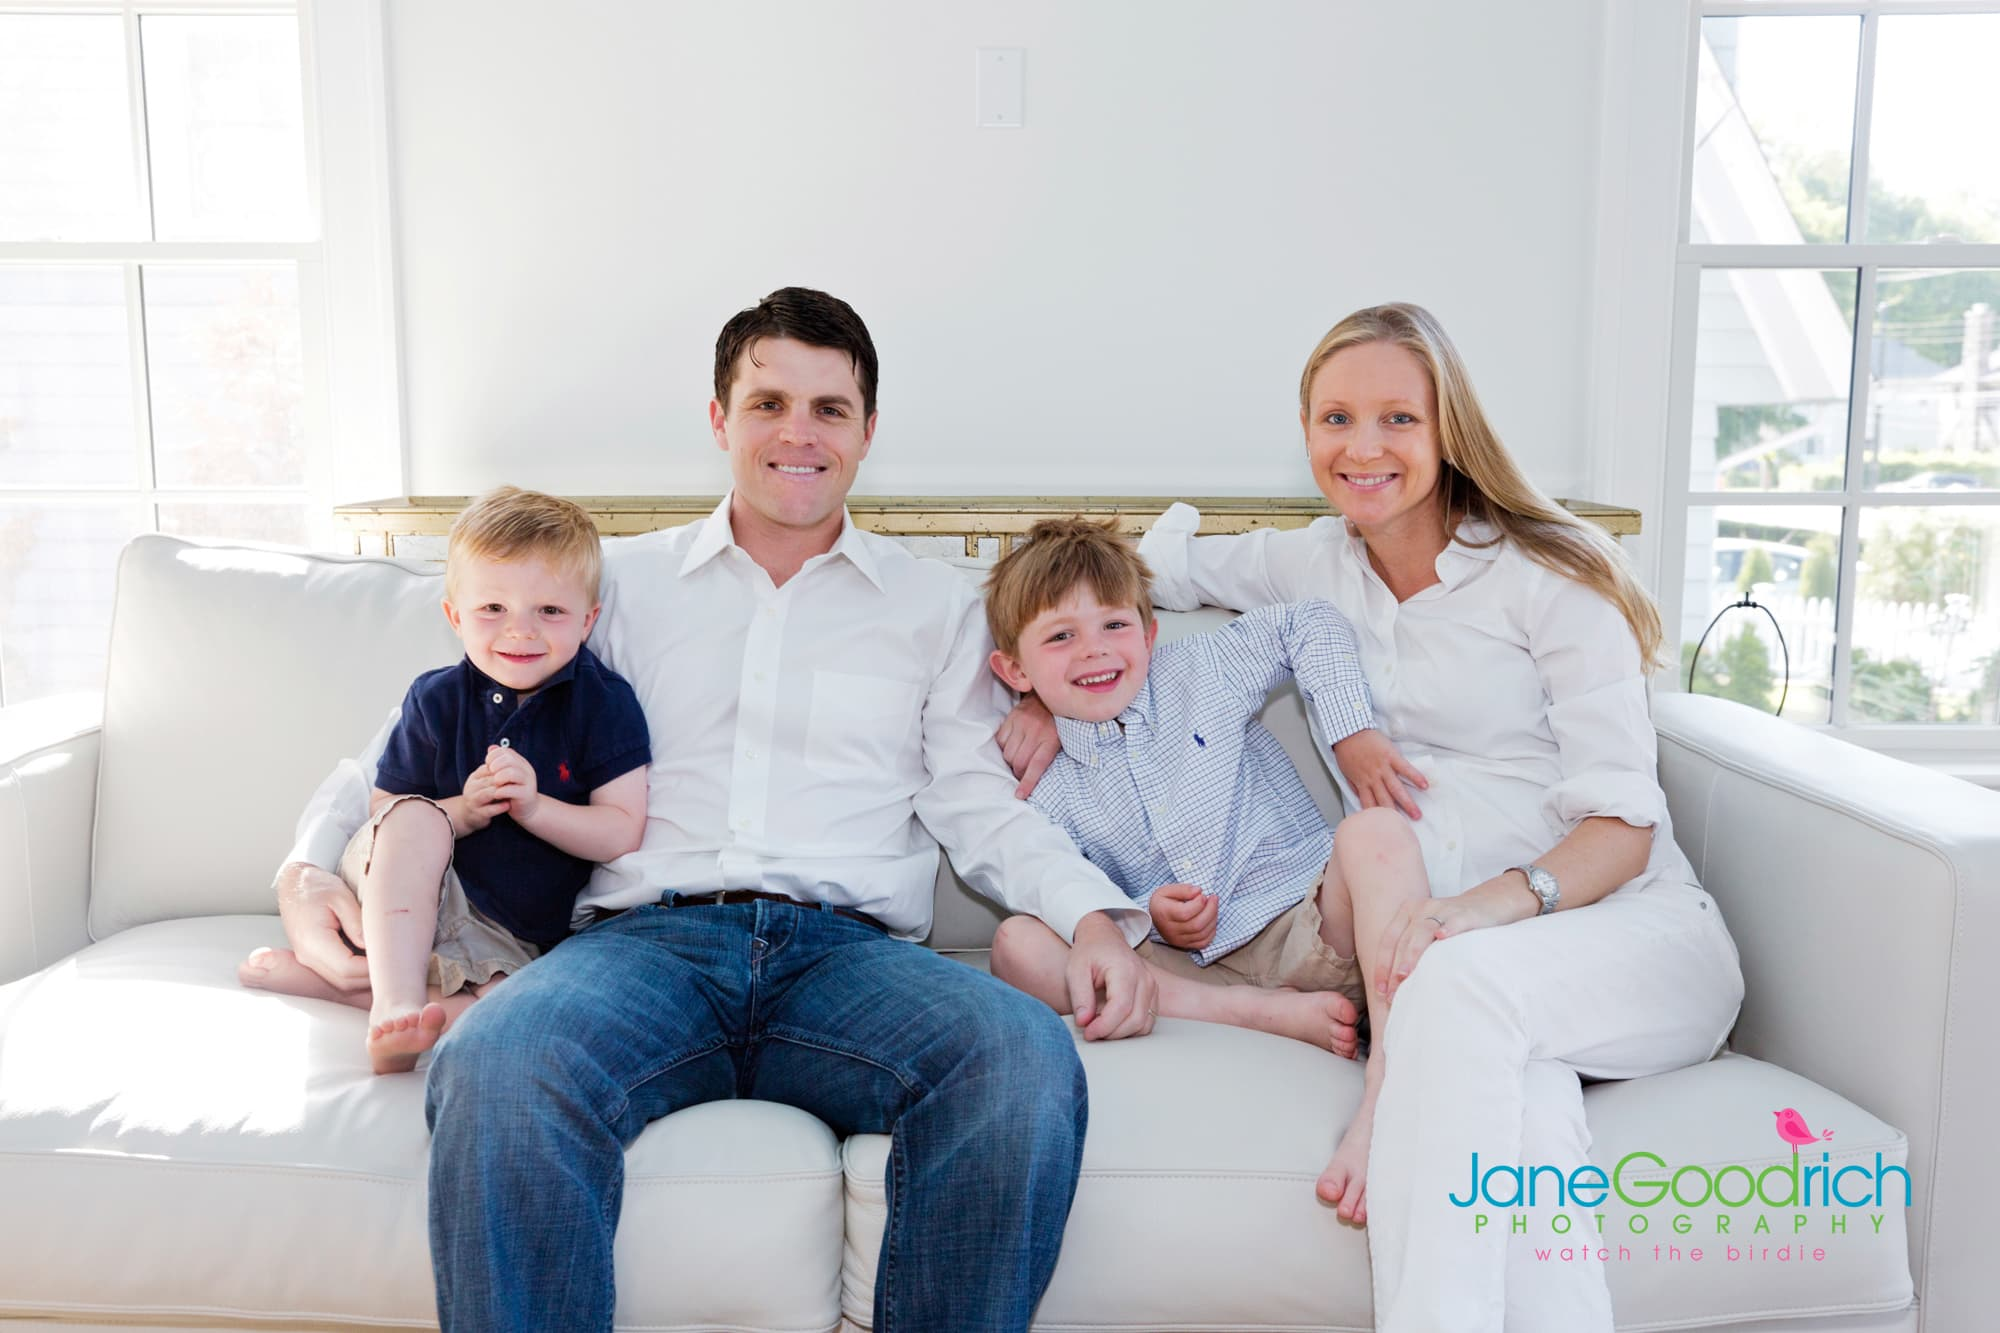 Choosing a fantastic family photographer in Larchmont NY 10538